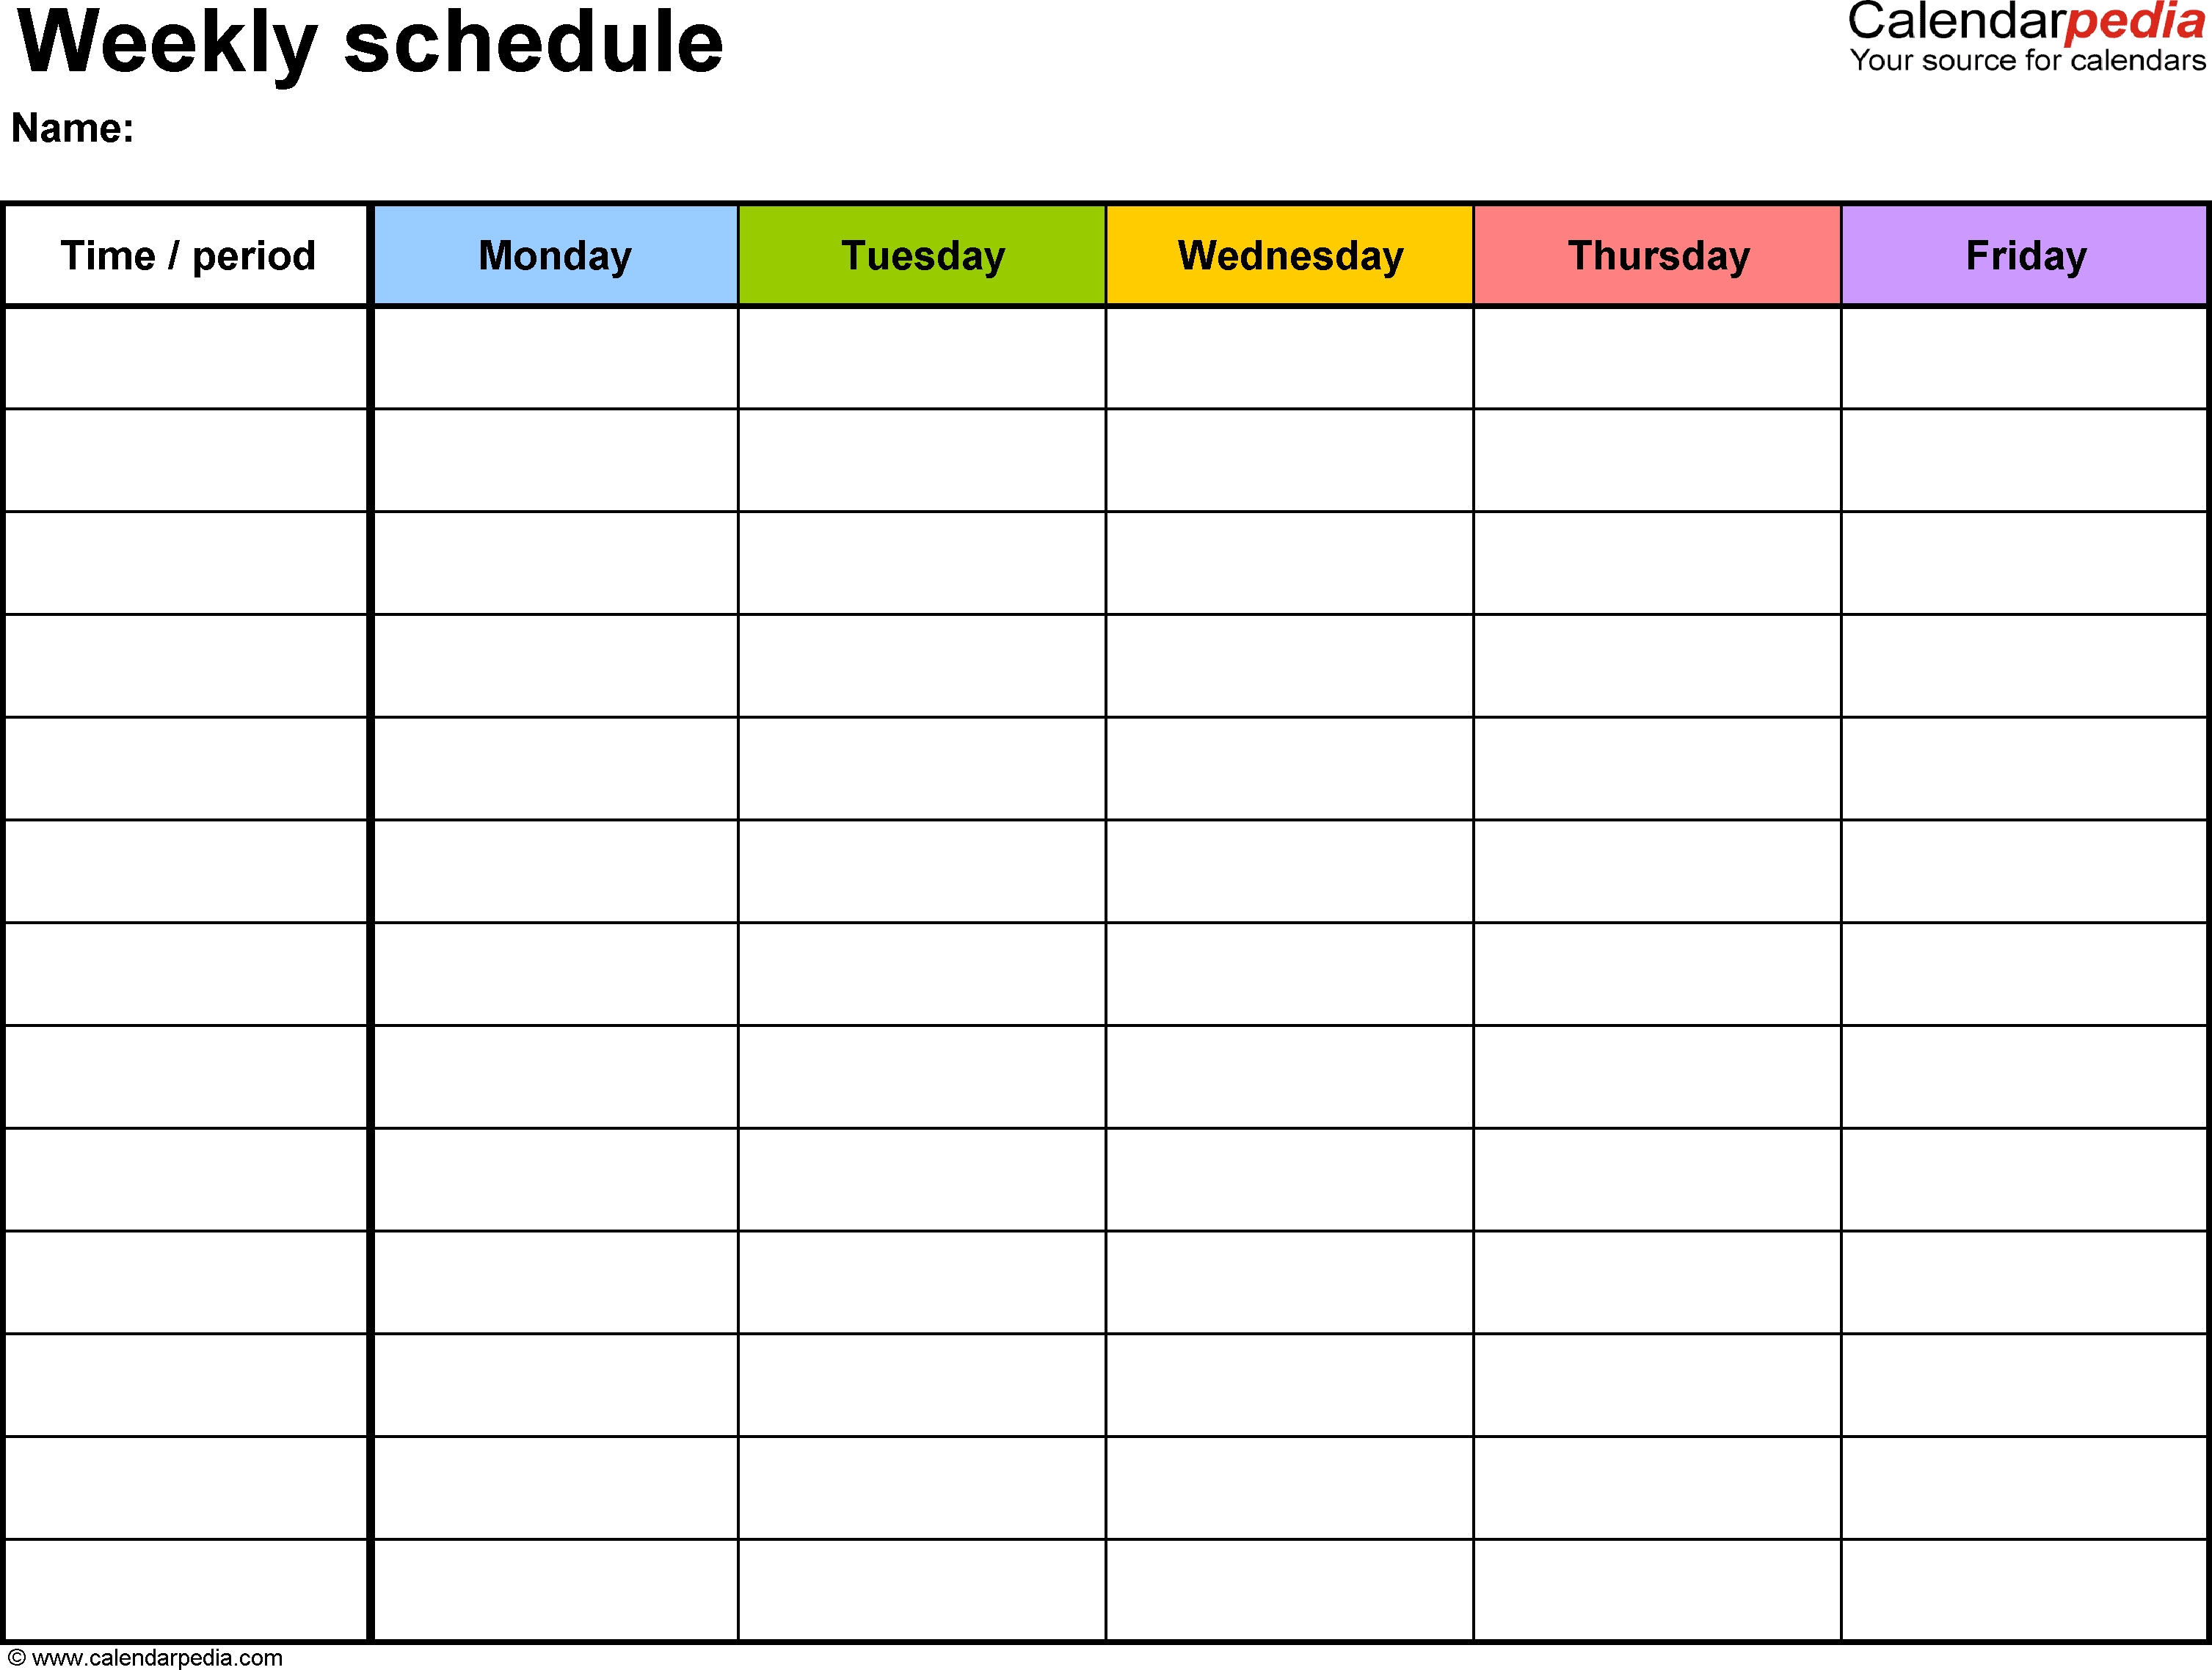 Free Weekly Schedule Templates For Word - 18 Templates-Blank Calendar Page Monday To Friday